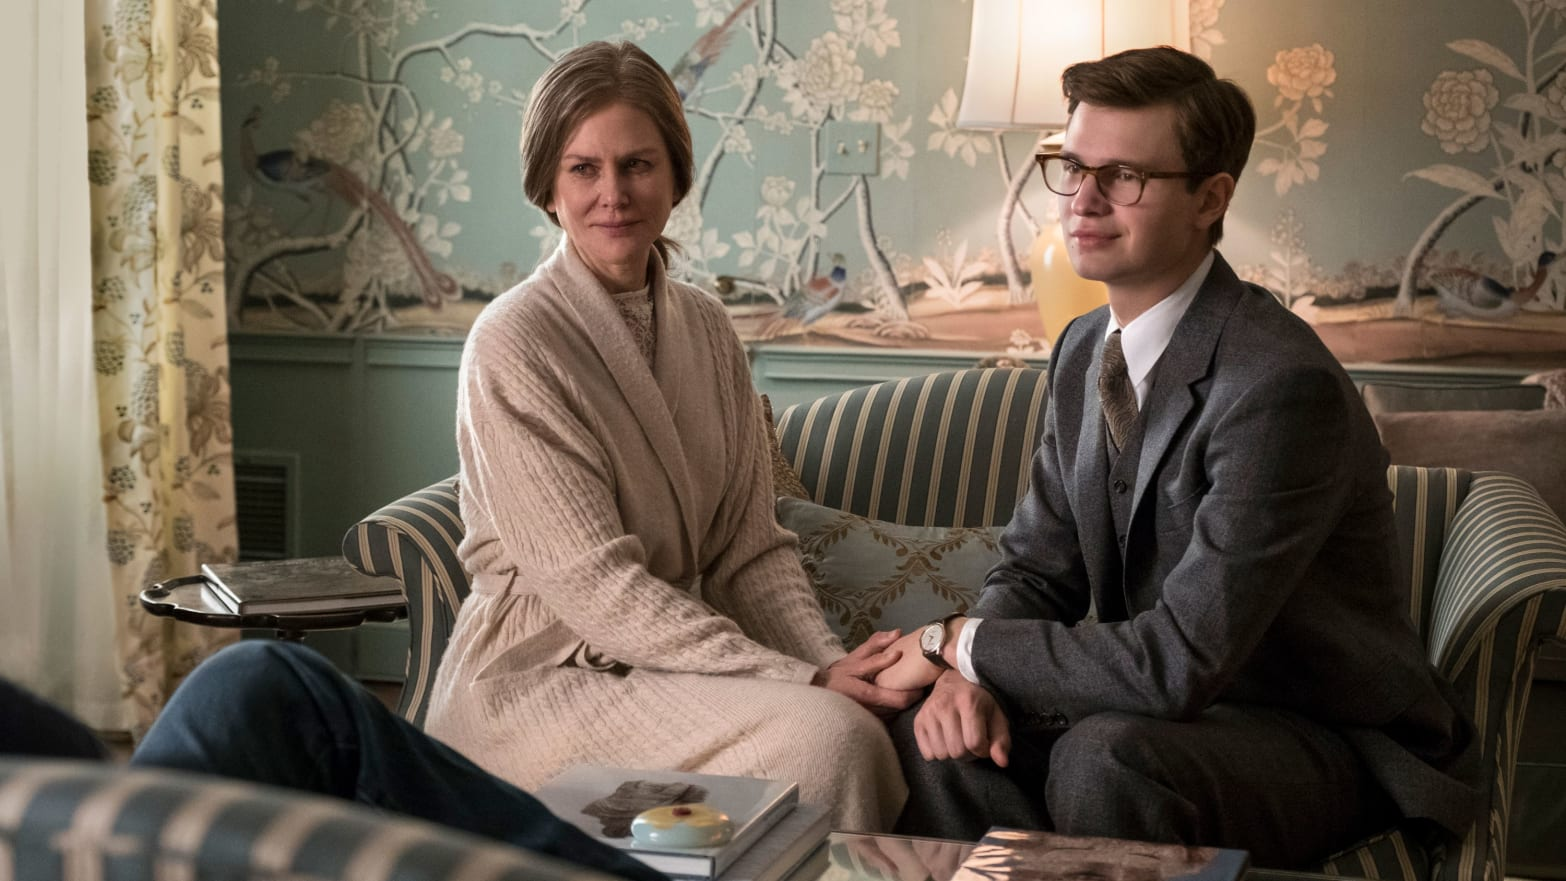 'The Goldfinch' Movie, Starring Ansel Elgort and Nicole Kidman, Lays a Big Egg in Toronto